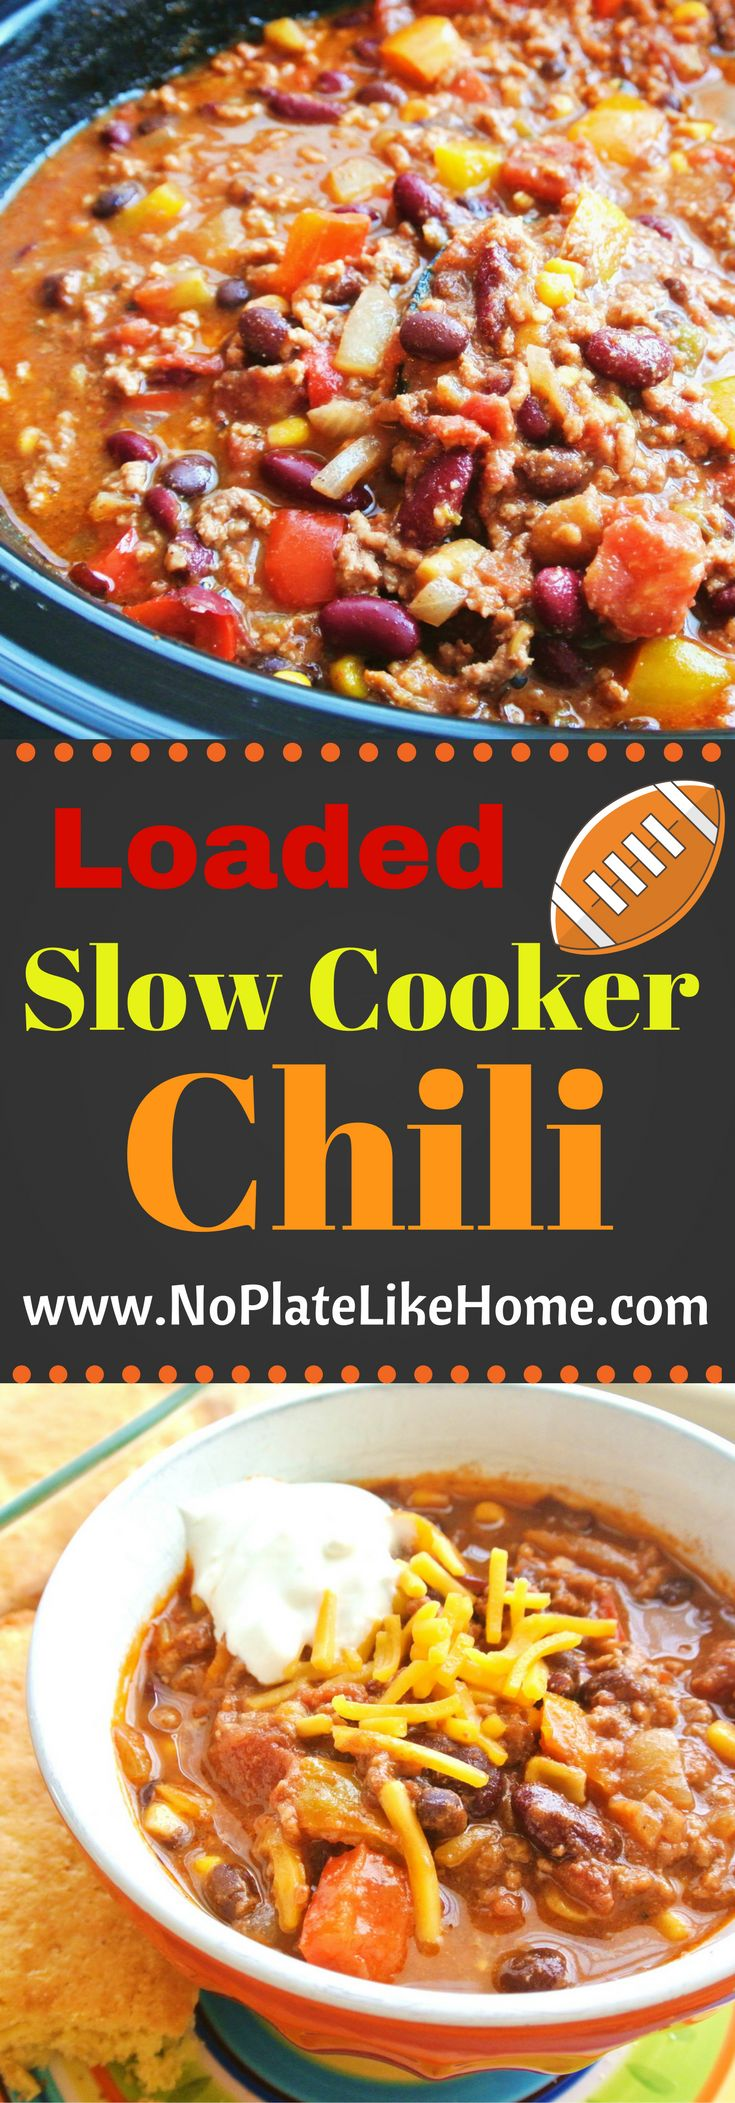 A tasty homemade and easy 5 hr slow cooker chili loaded with ground beef, red kidney beans, black beans, red, yellow and orange bell peppers, canned tomatoes, and chili spices for the best comfort food. Can't wait? Stove top directions included. Perfect for parties! Pin for later.